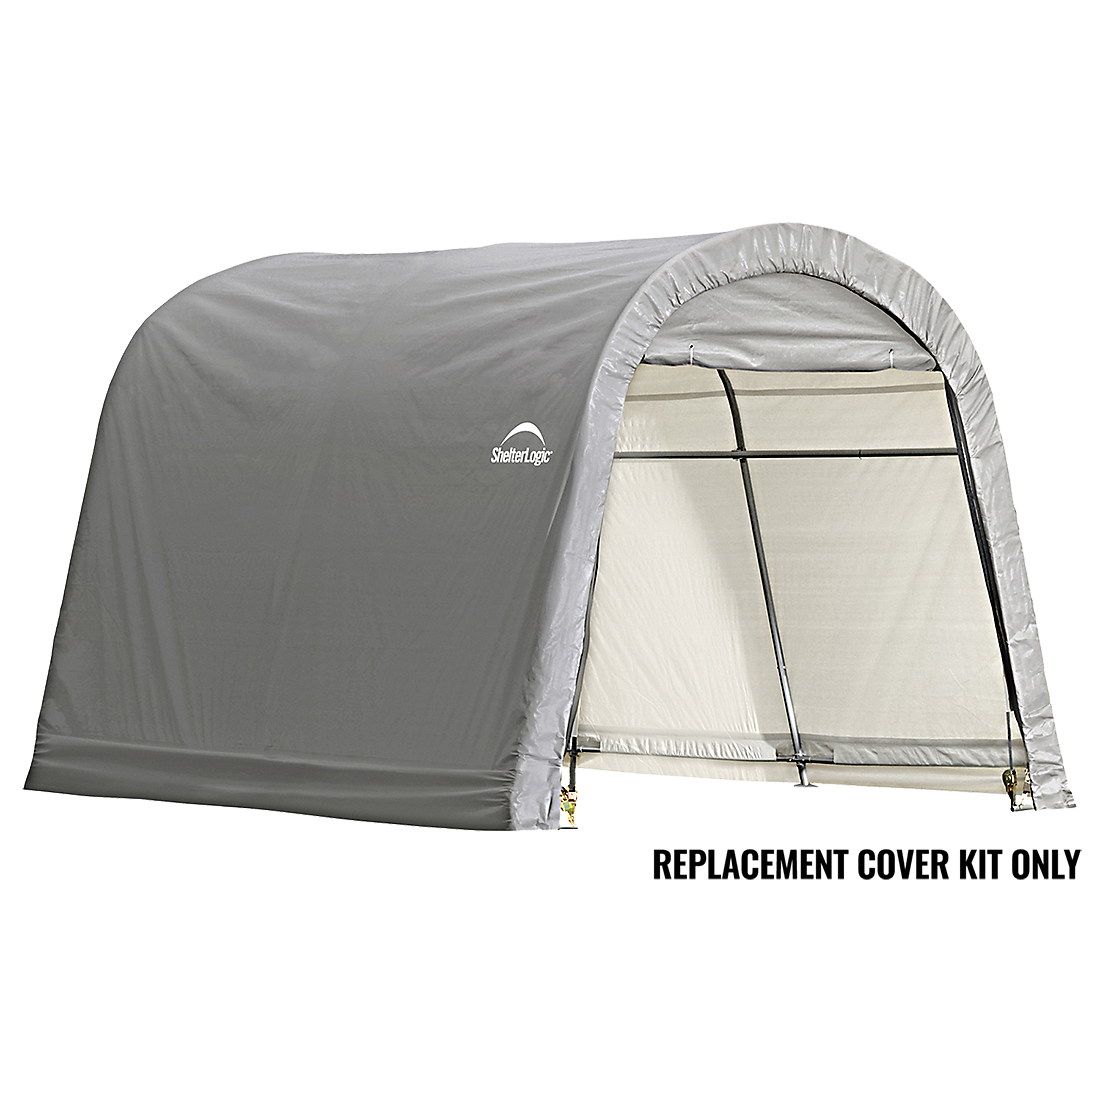 Replacement Cover Kit for the Shed-in-a-Box RoundTop® 10 x 10 x 8 ft.